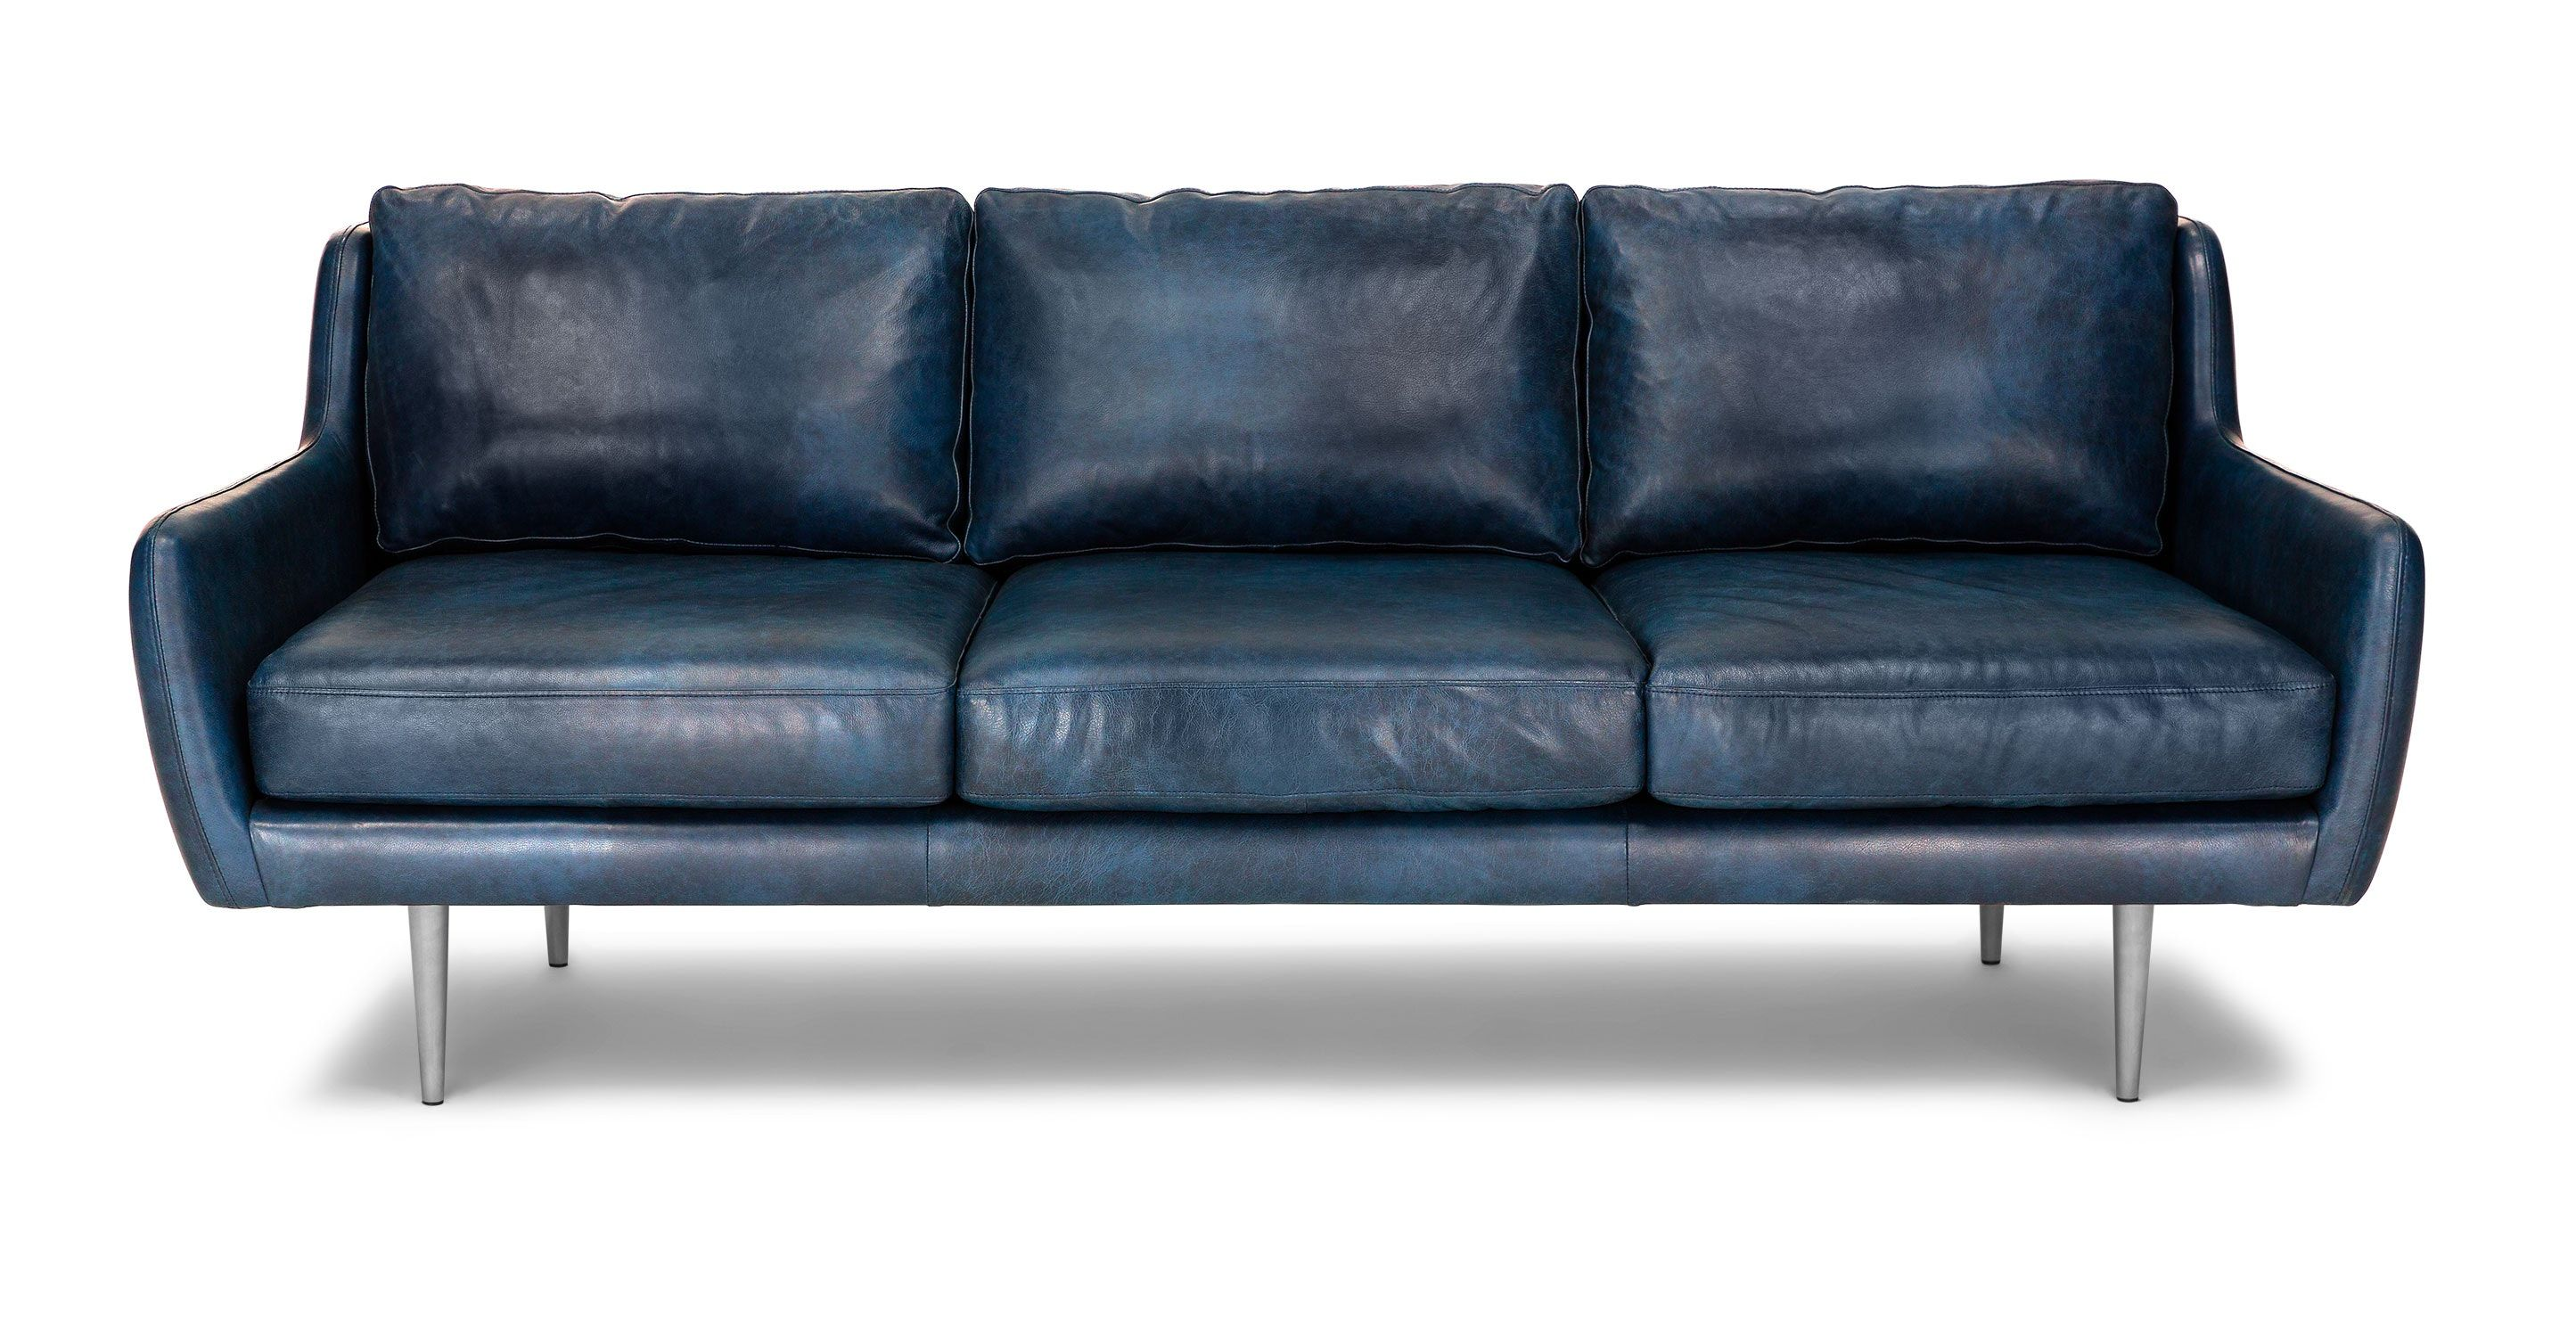 Matrix Oxford Blue Sofa Blue Leather Sofa Best Leather Sofa Sofa Deals